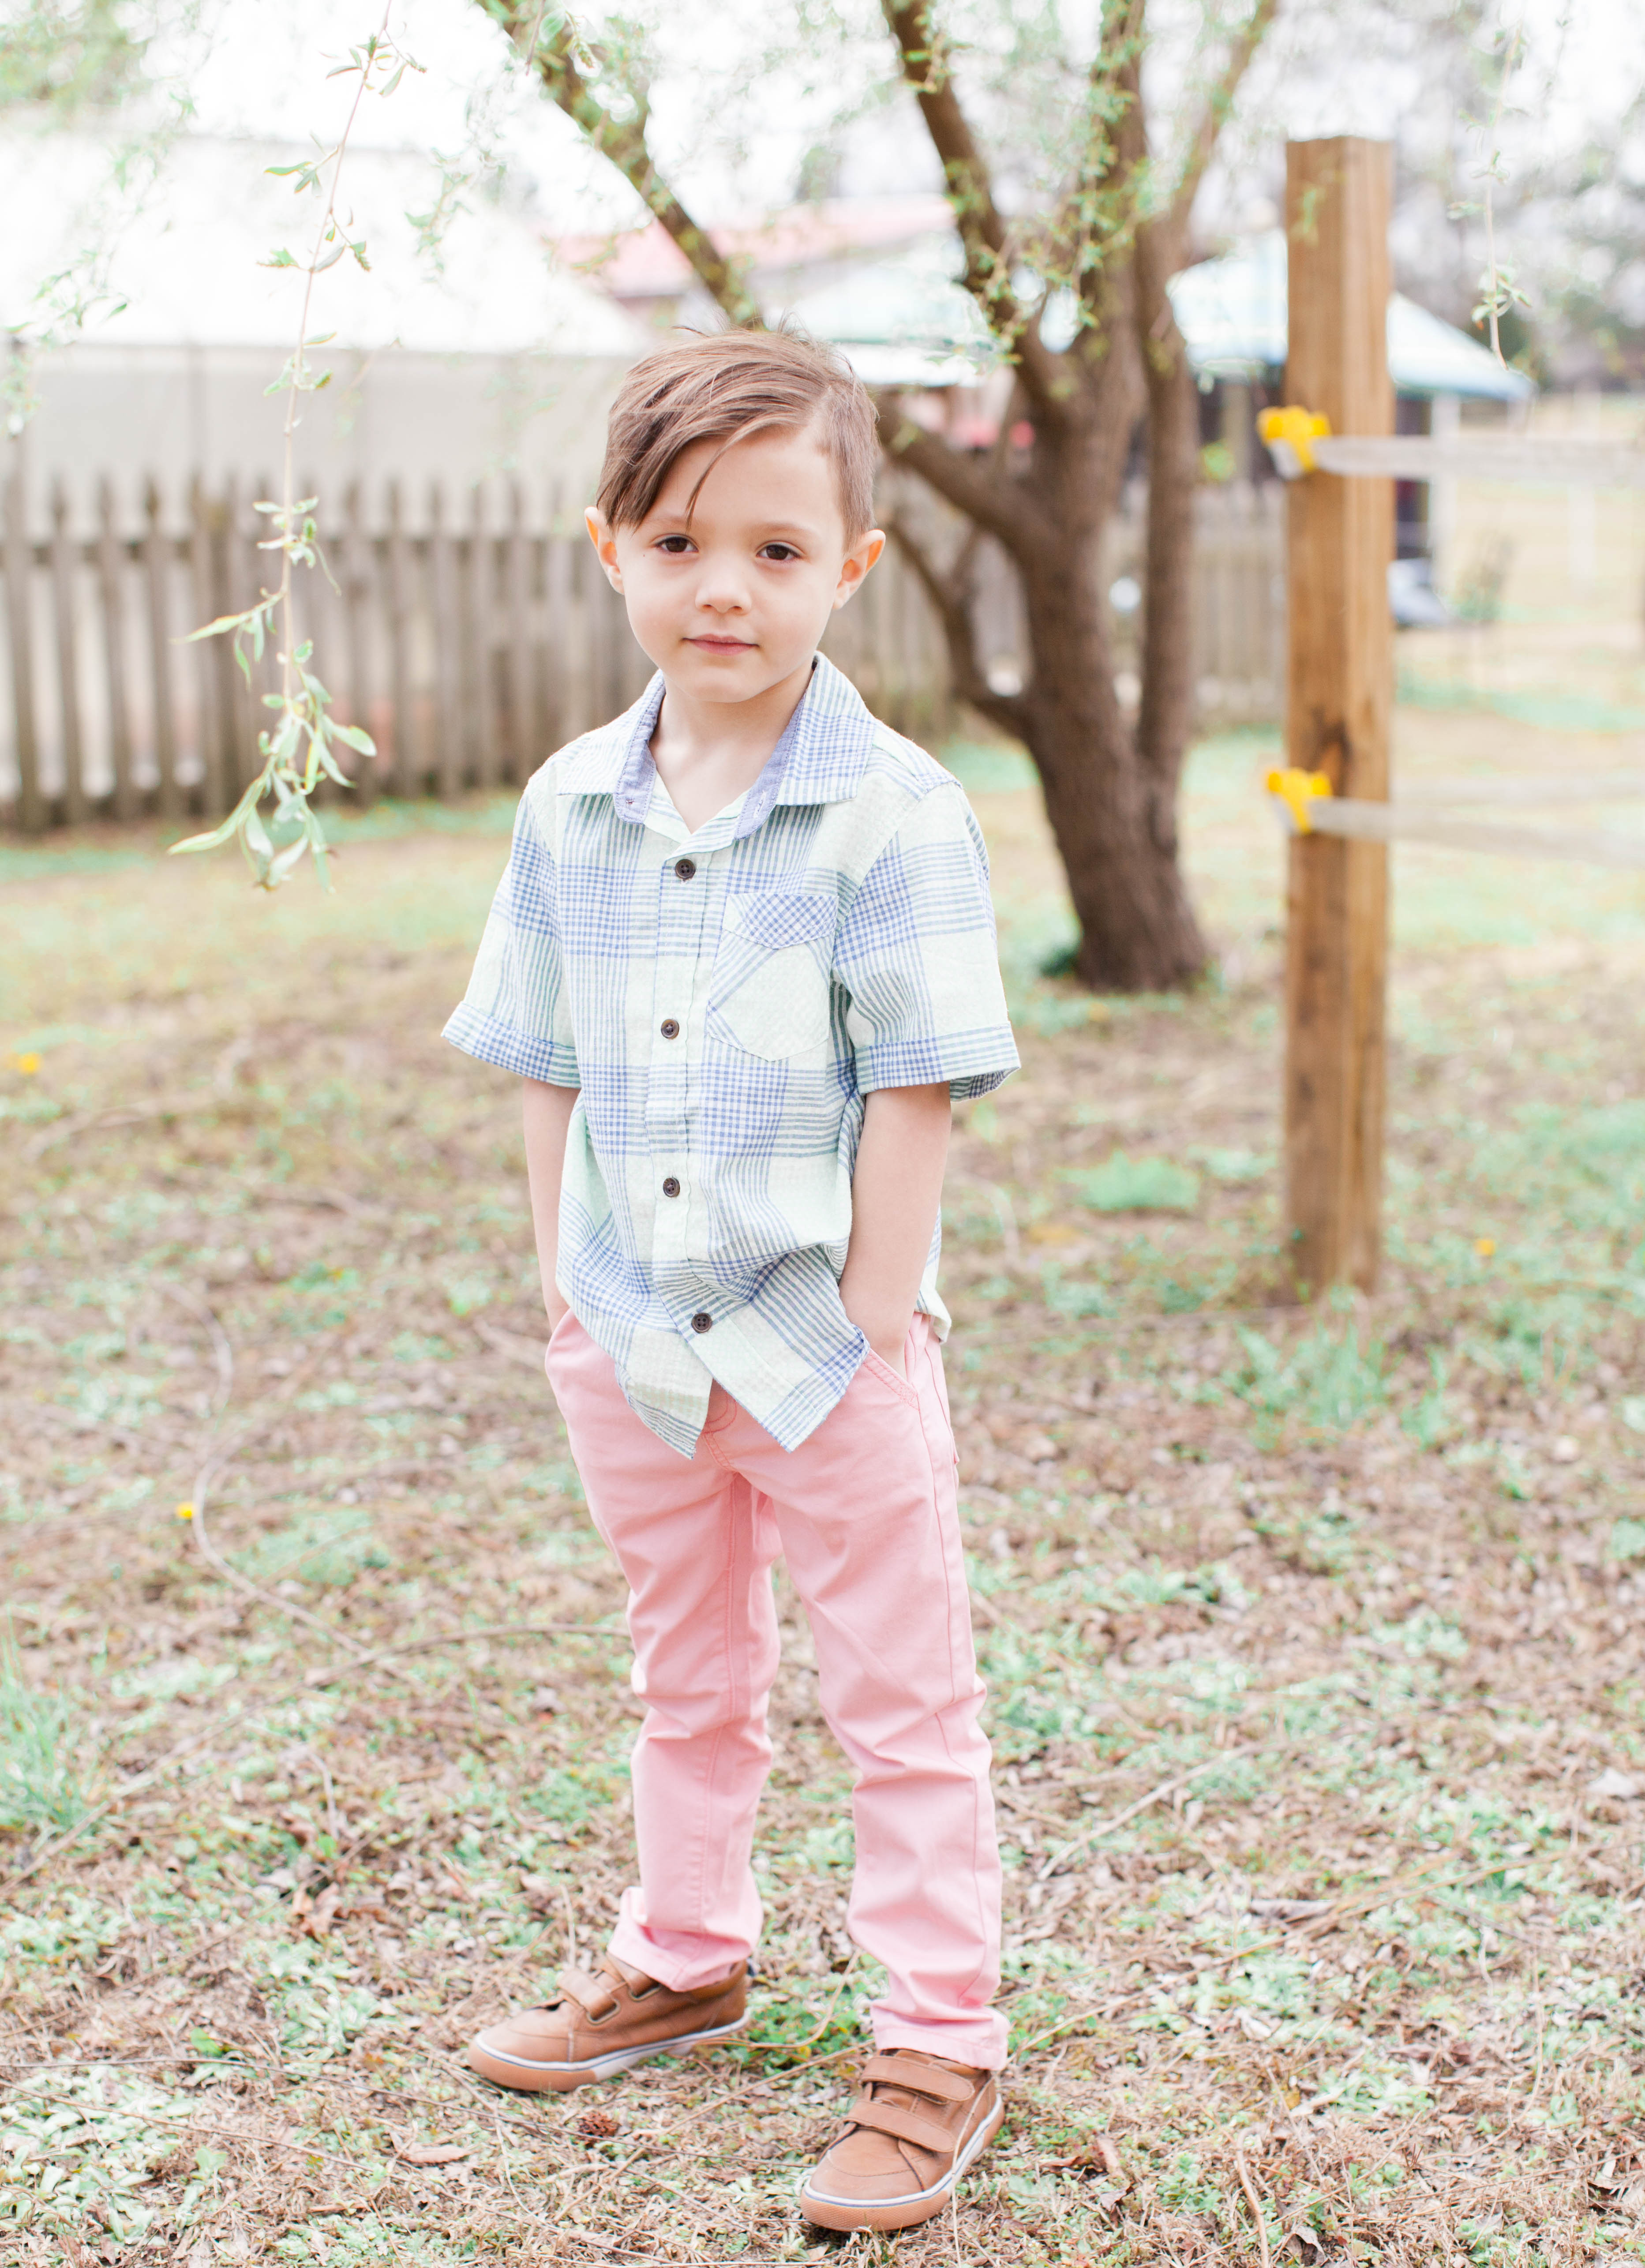 North Carolina fashion and lifestyle blogger and writer Jessica Linn in Valentine Fields Farm in Knightdale NC. Spring and Easter family photography by Hayley Gastiger a local North Carolina photographer. Children photography.